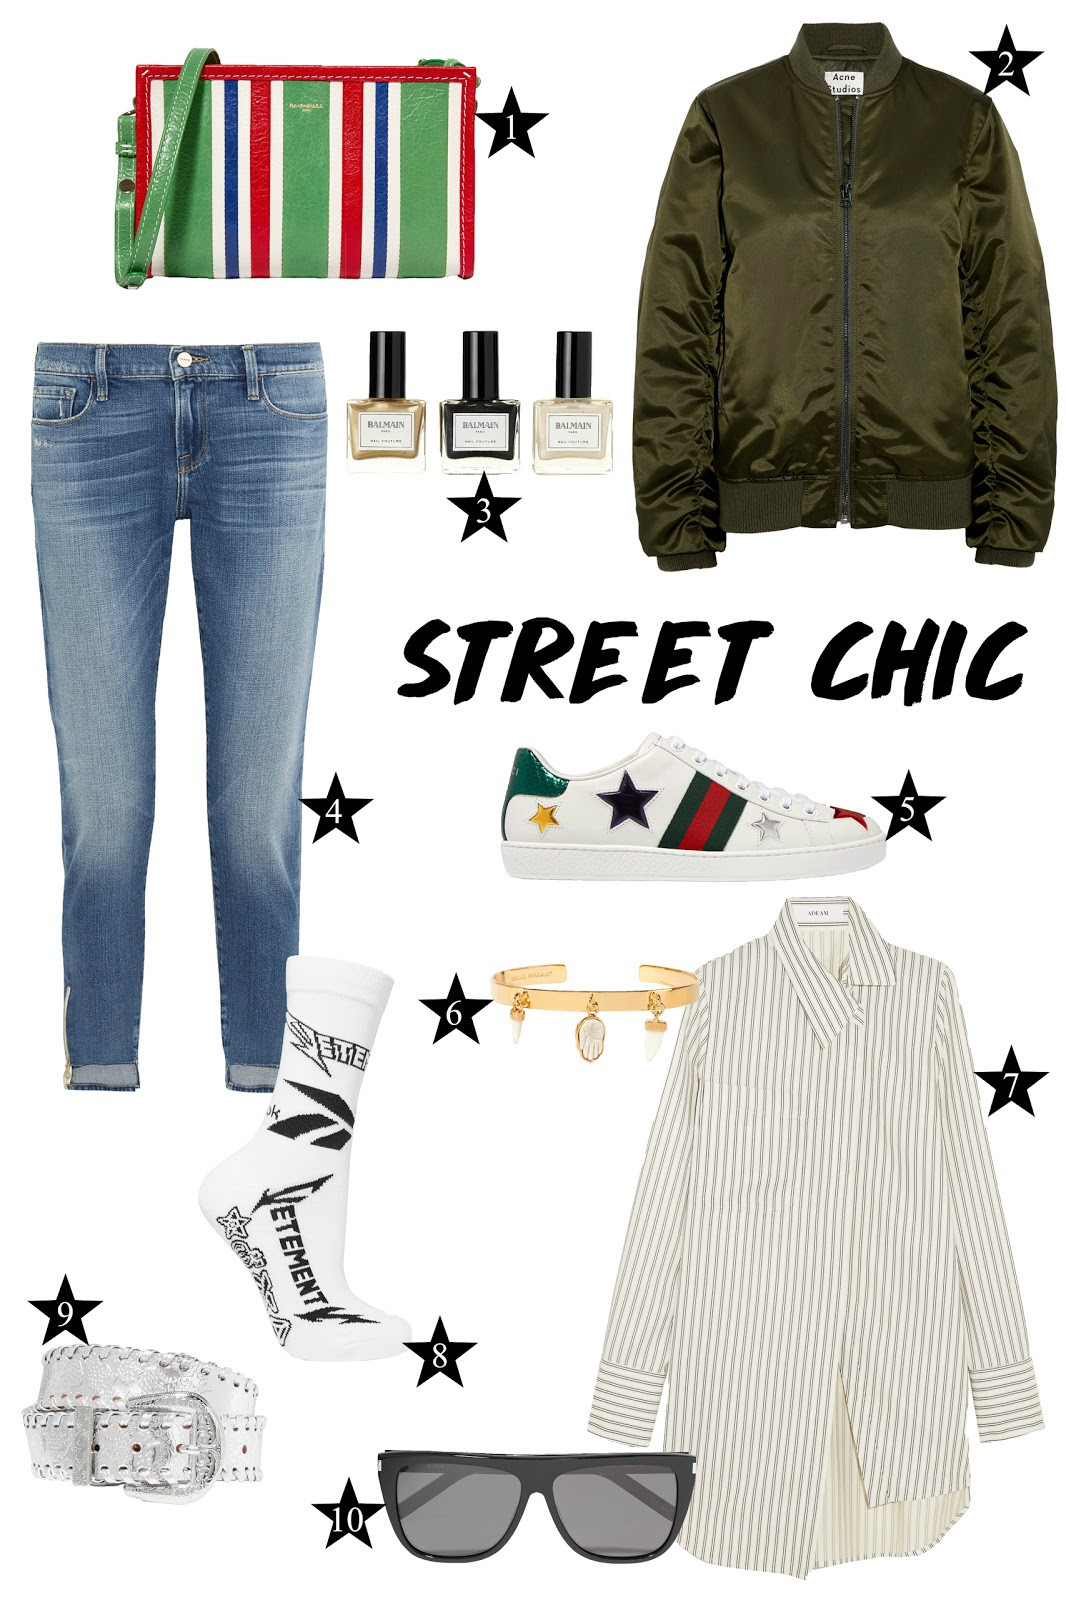 fashion, street chic, trend, 2017, mode, balmain, balenciaga, isabel marant, gucci, vetements, frame, saint laurent, maison margiela, adeam, acne studios, style, clothing,